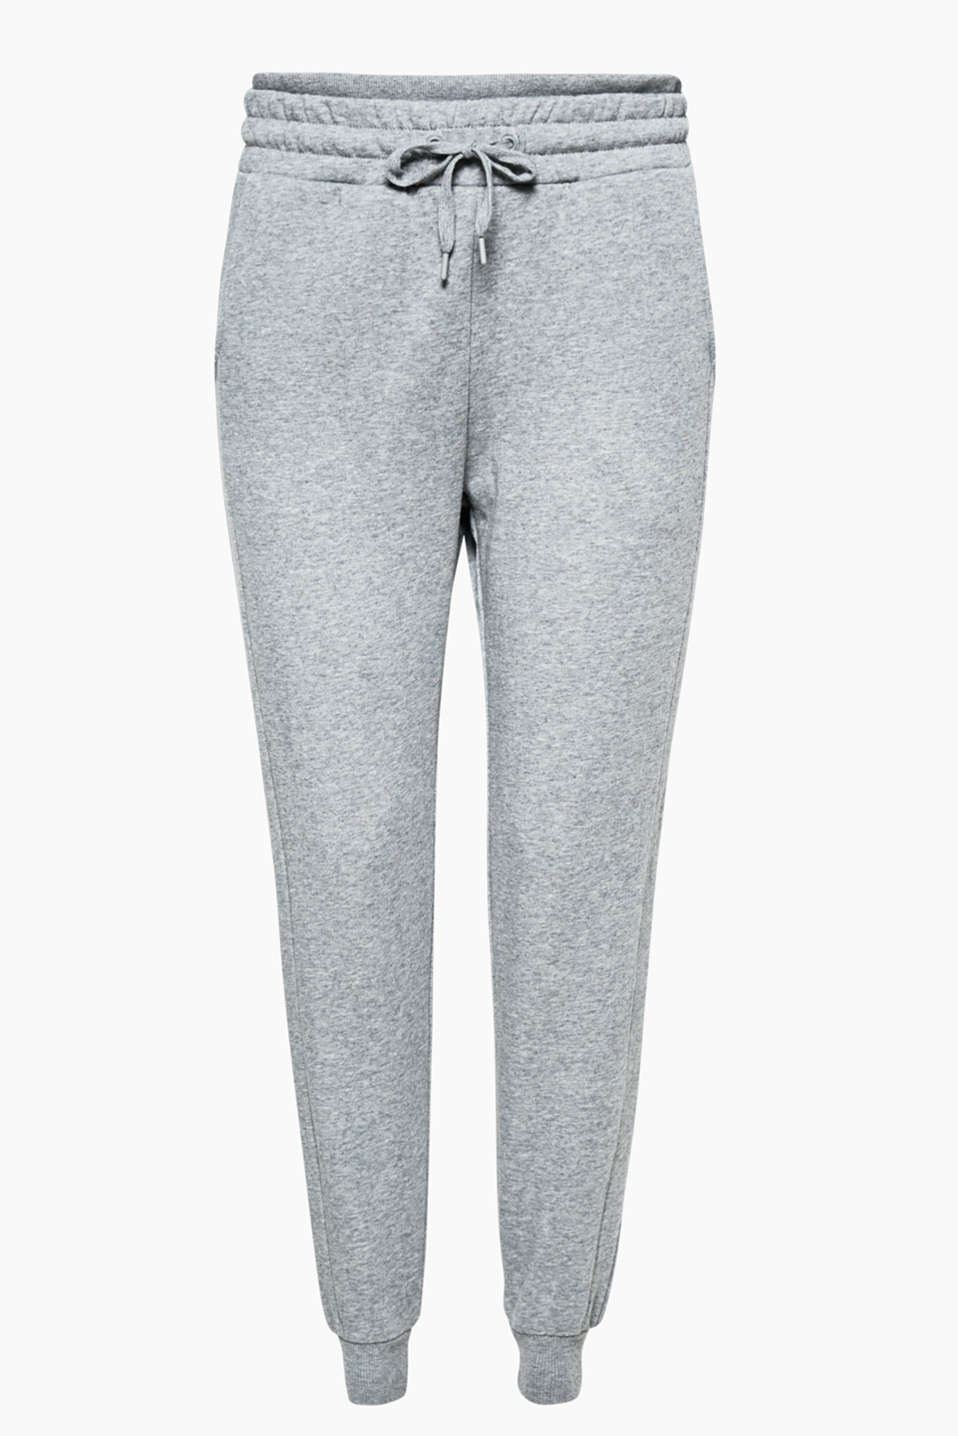 Have fun: working out or relaxing in these sweat tracky bottoms with a softly brushed inner surface and wide waistband!